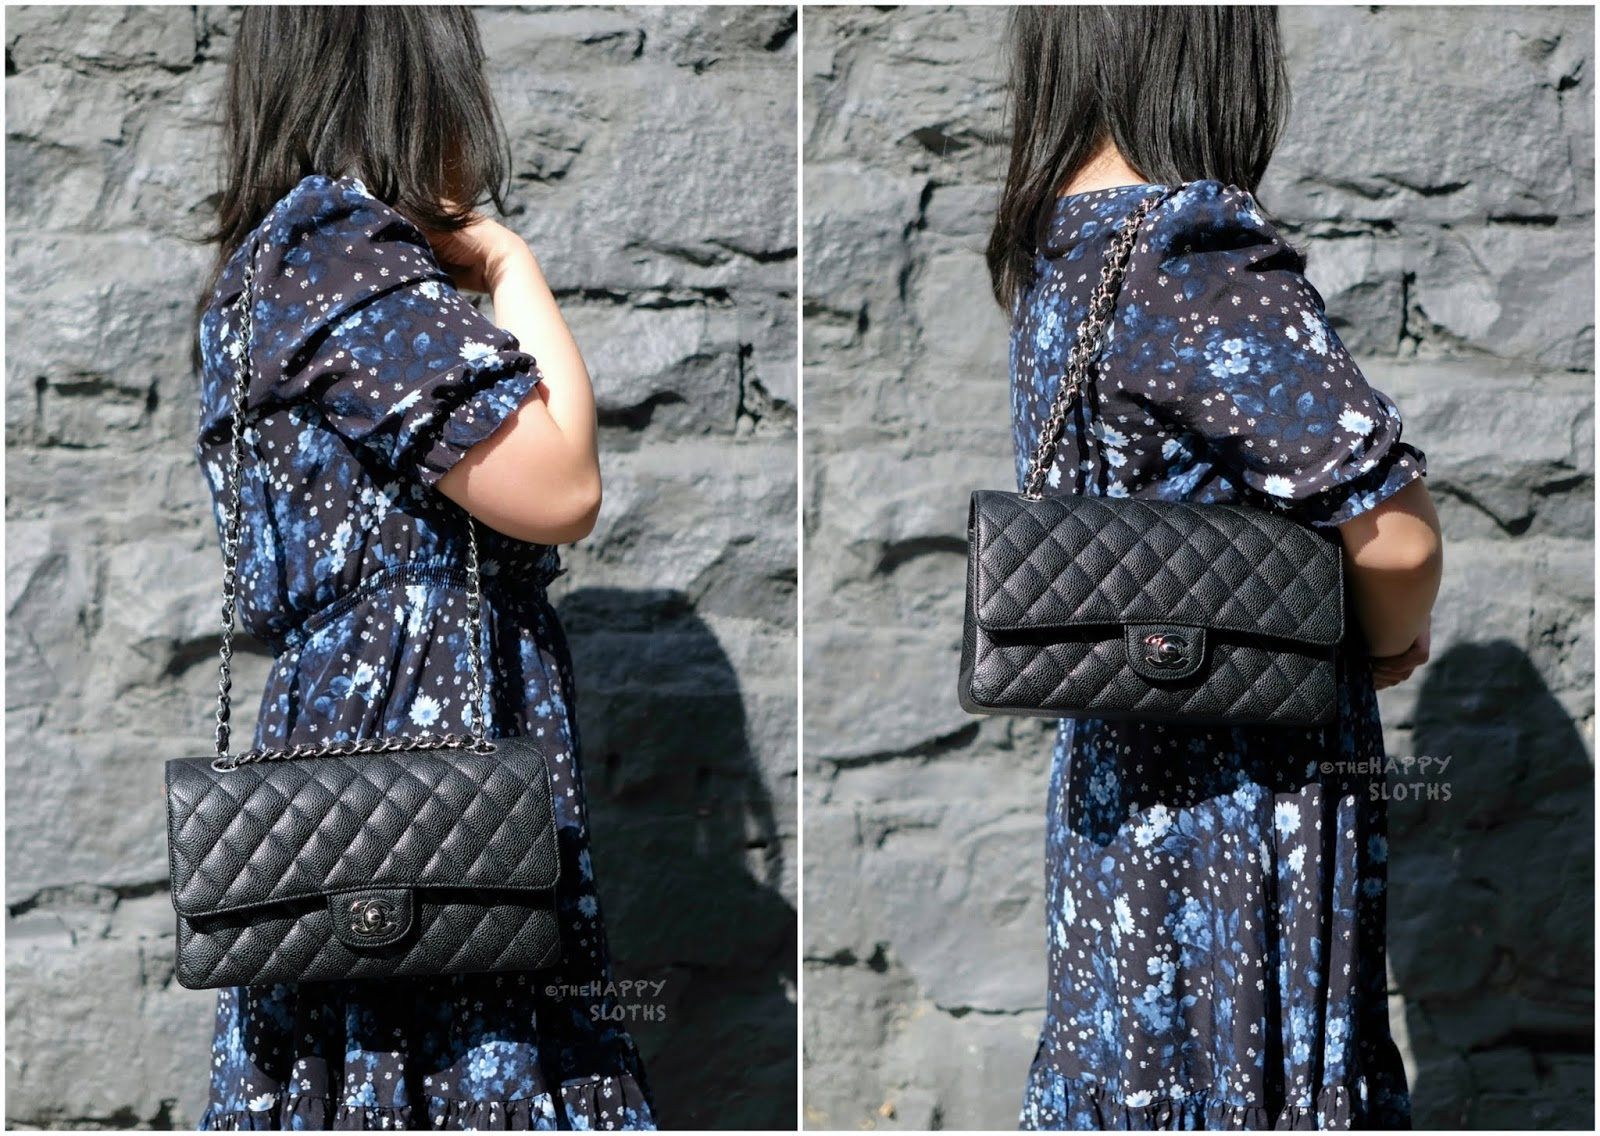 Chanel | Medium Classic Flap Handbag in Black Caviar Leather with Silver Hardware | Model Shot: Review